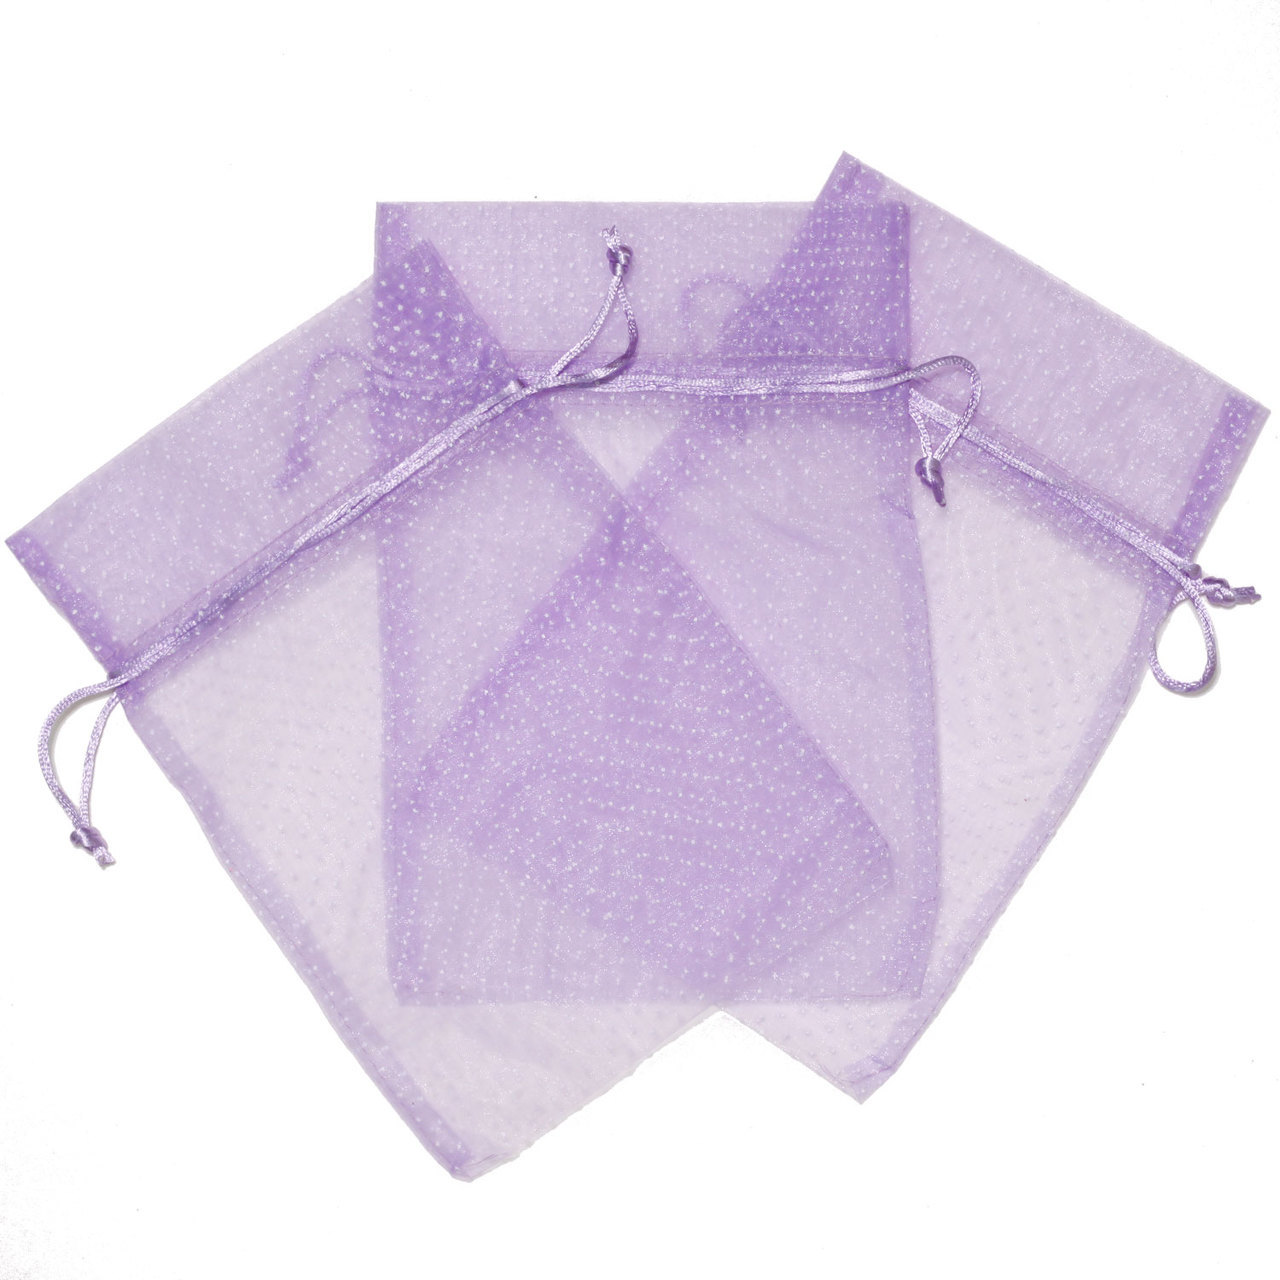 """Organza Purple Pink Polka Dot Gift Bags (9"""" x 5.5"""") Party Favor Fabric Baby Shower Birthday Treat Goody Bag"""